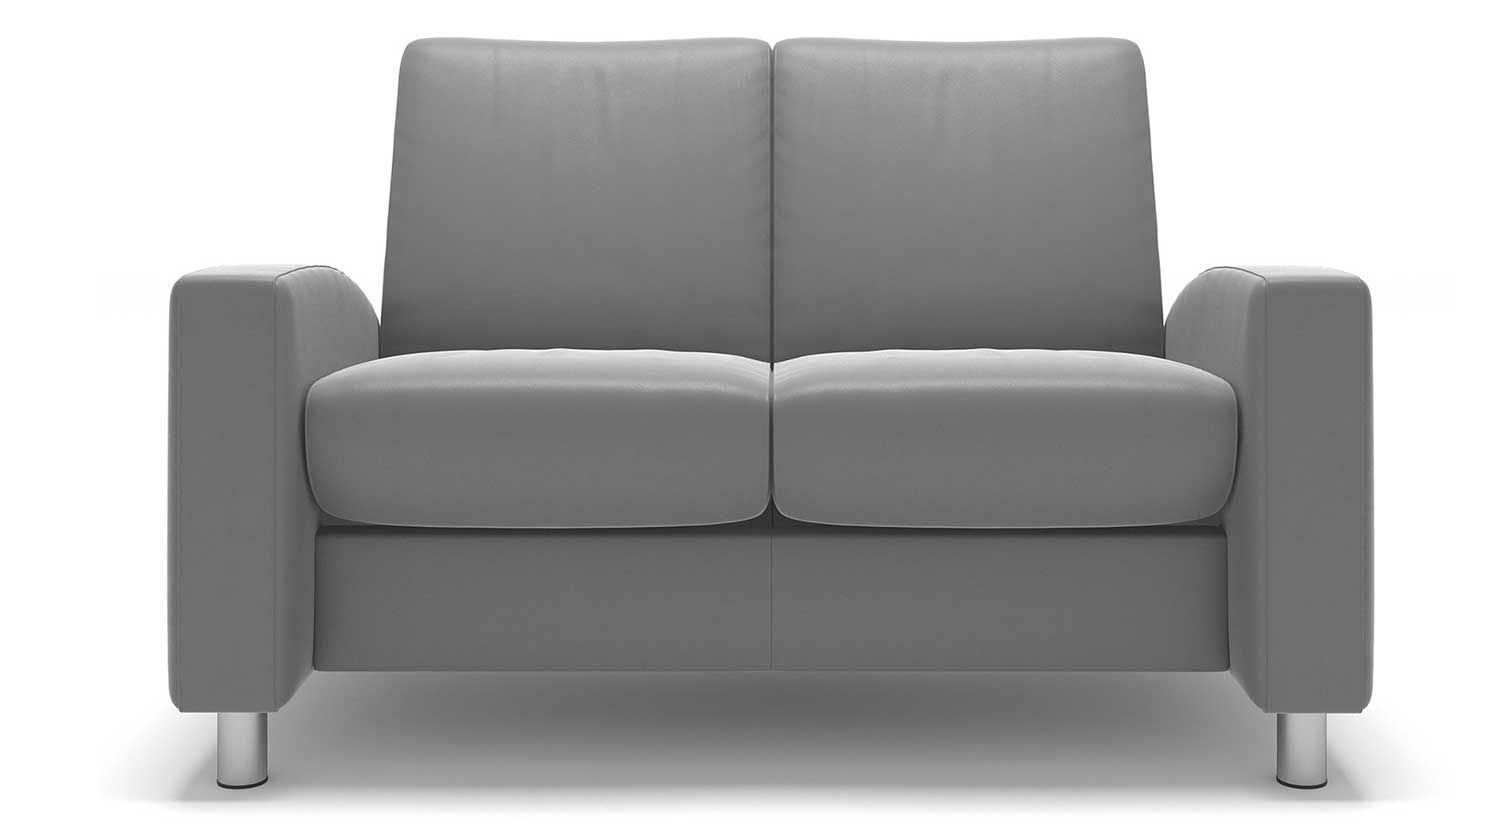 Peachy Circle Furniture Arion Stressless Lowback Loveseat Gmtry Best Dining Table And Chair Ideas Images Gmtryco